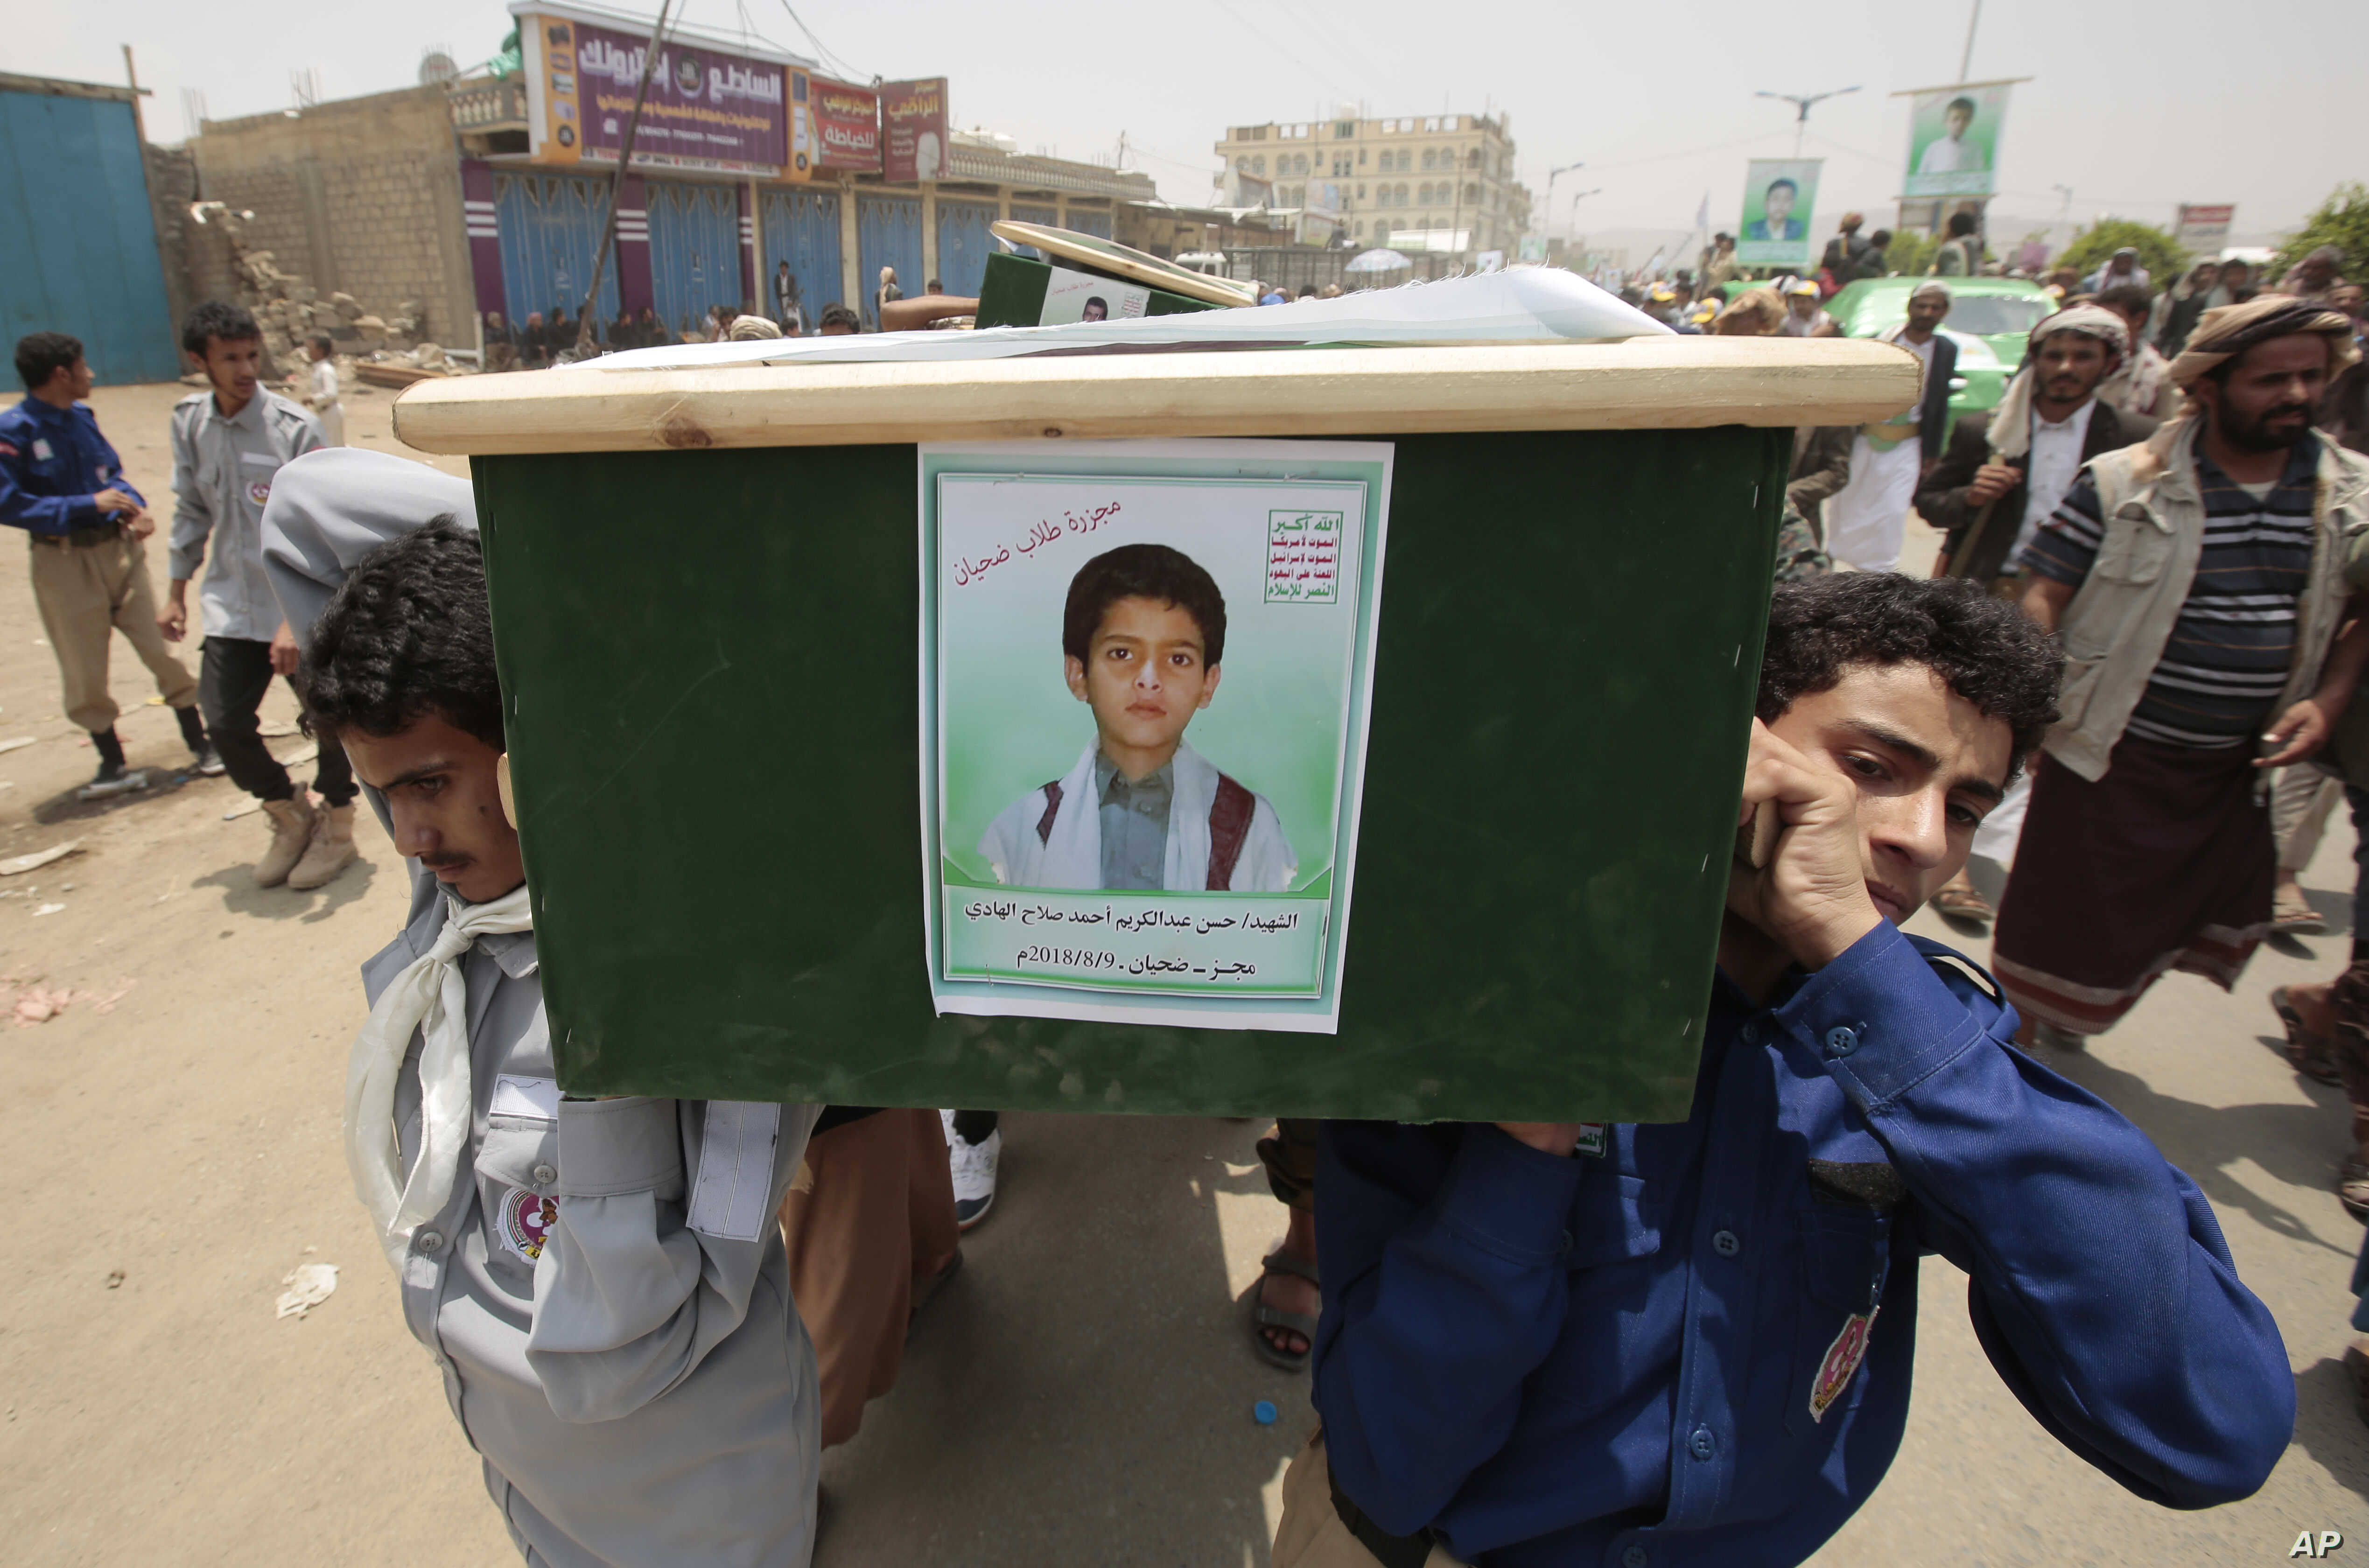 FILE - Yemeni men carry the coffin of a boy who was killed by a Saudi-led coalition airstrike, during a funeral in Saada, Yemen, Aug. 13, 2018.